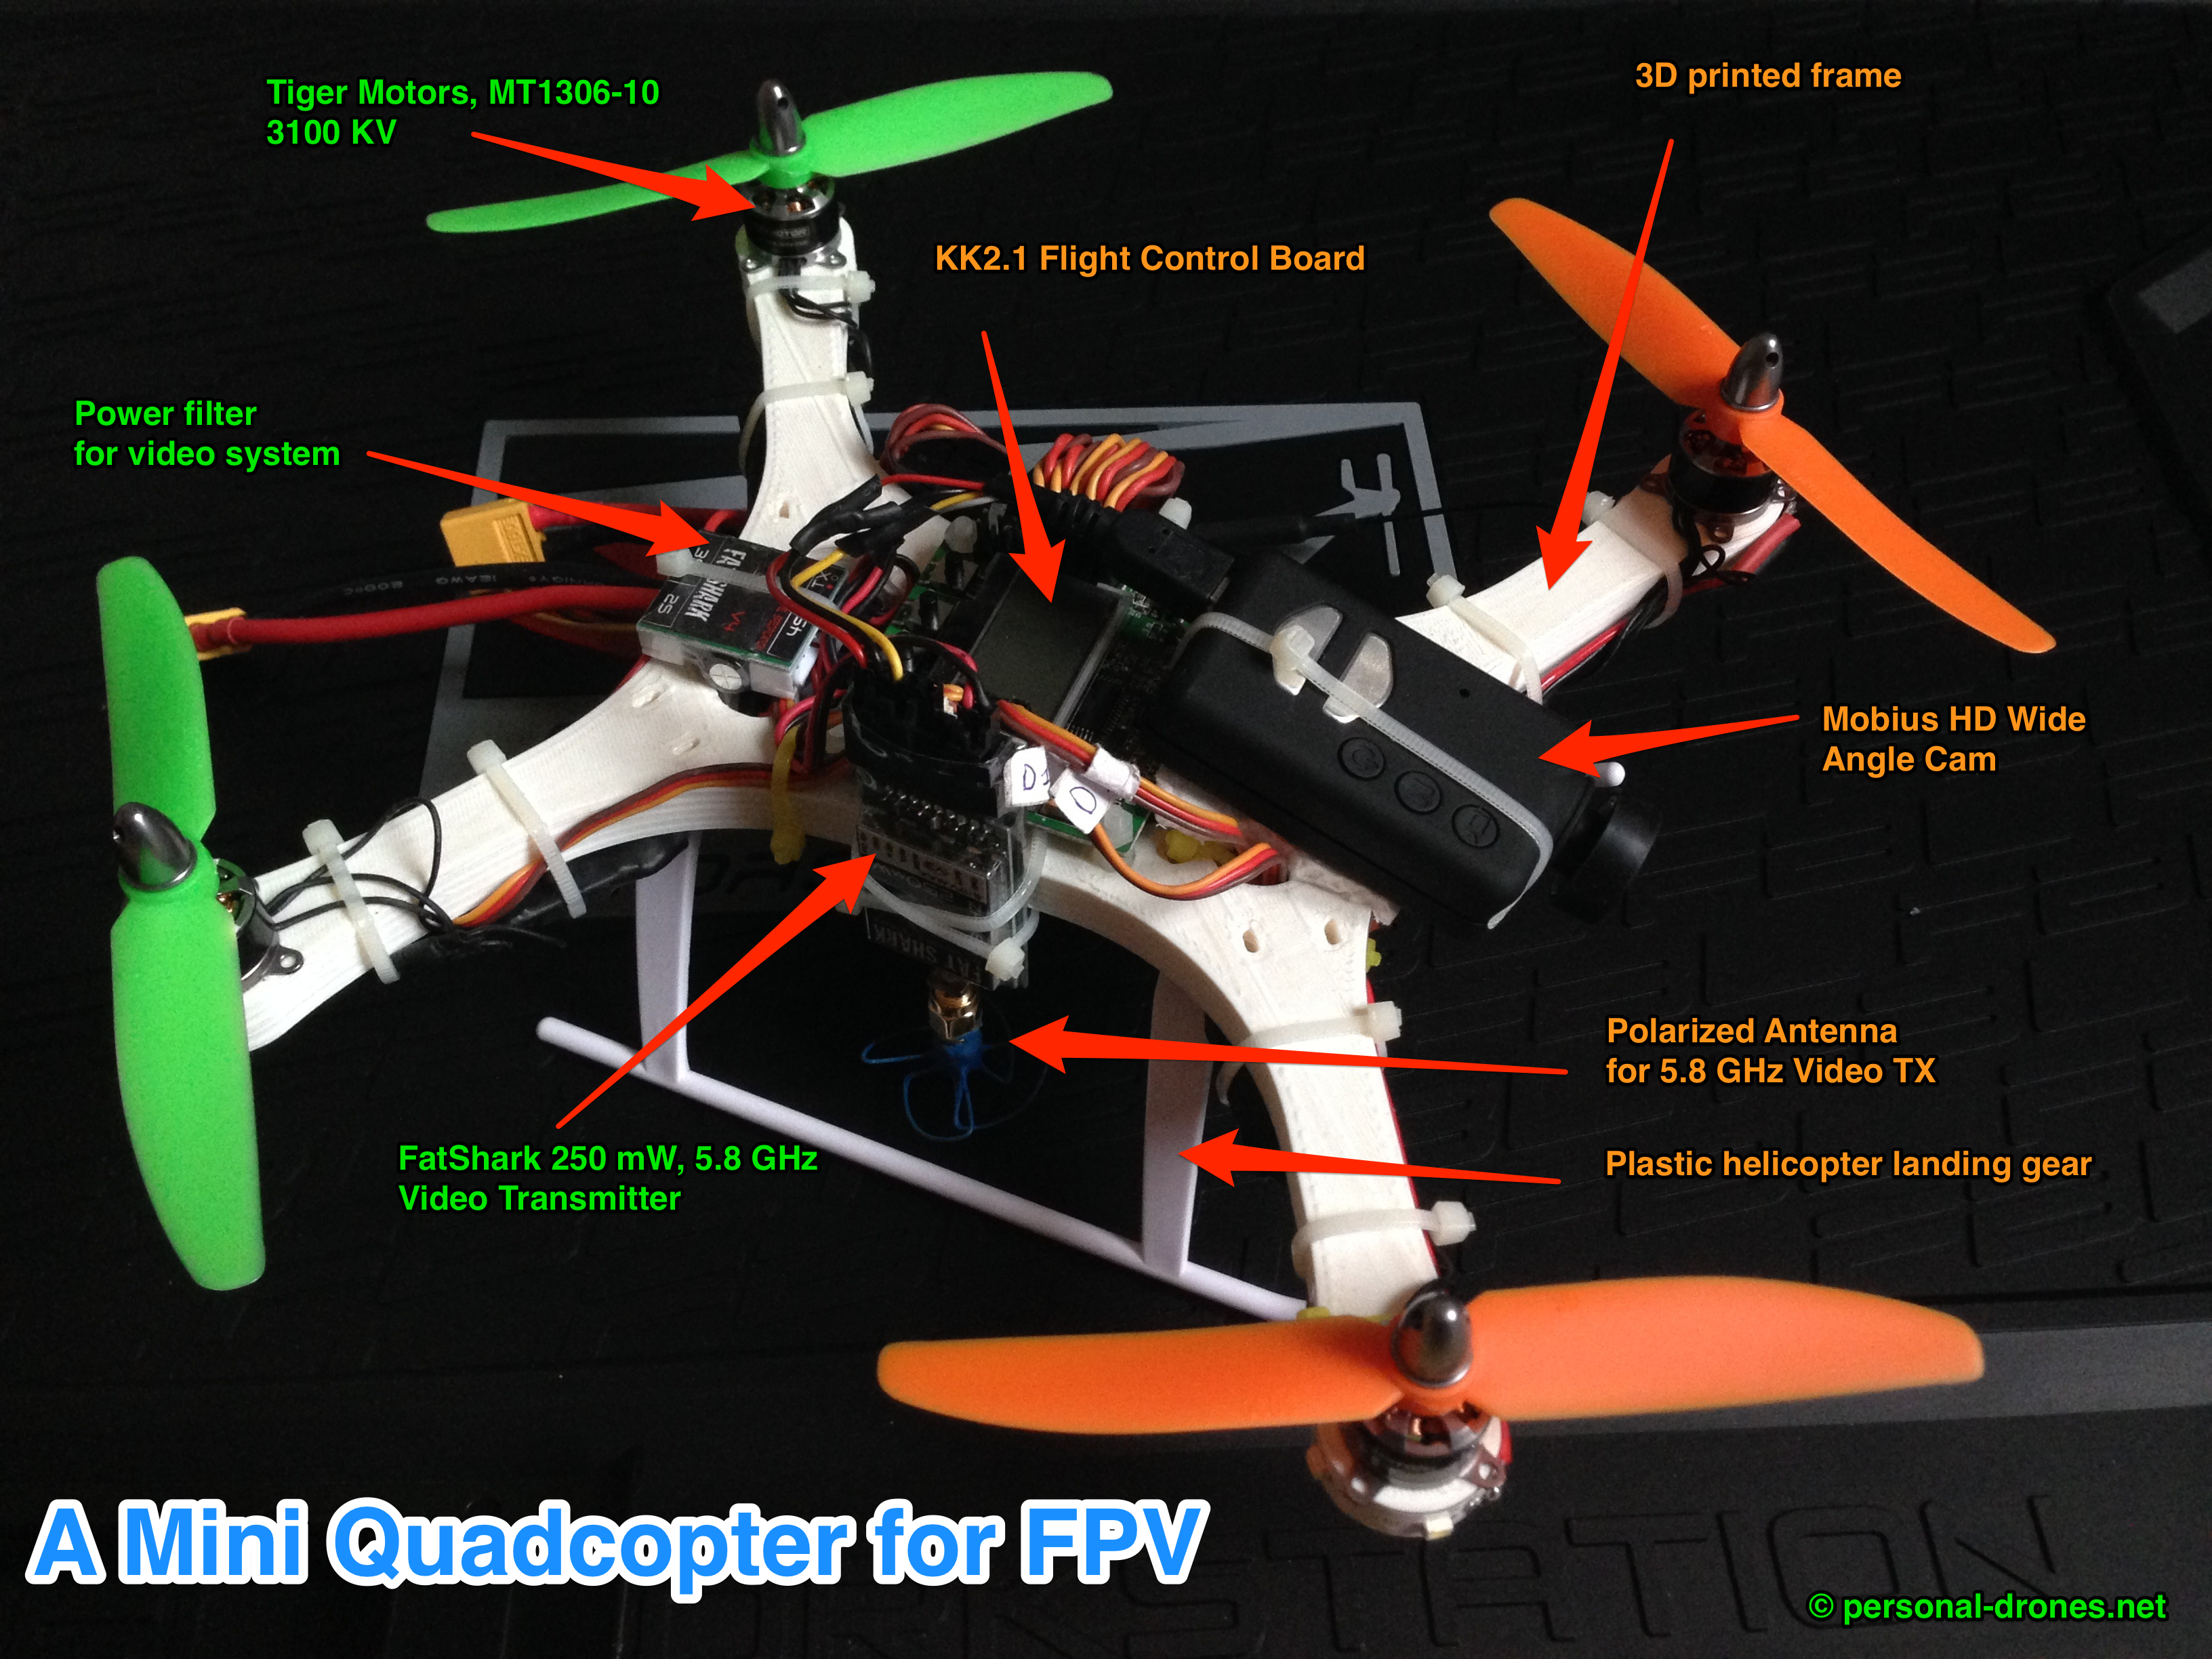 A Manually Assembled Mini Quadcopter For FPV